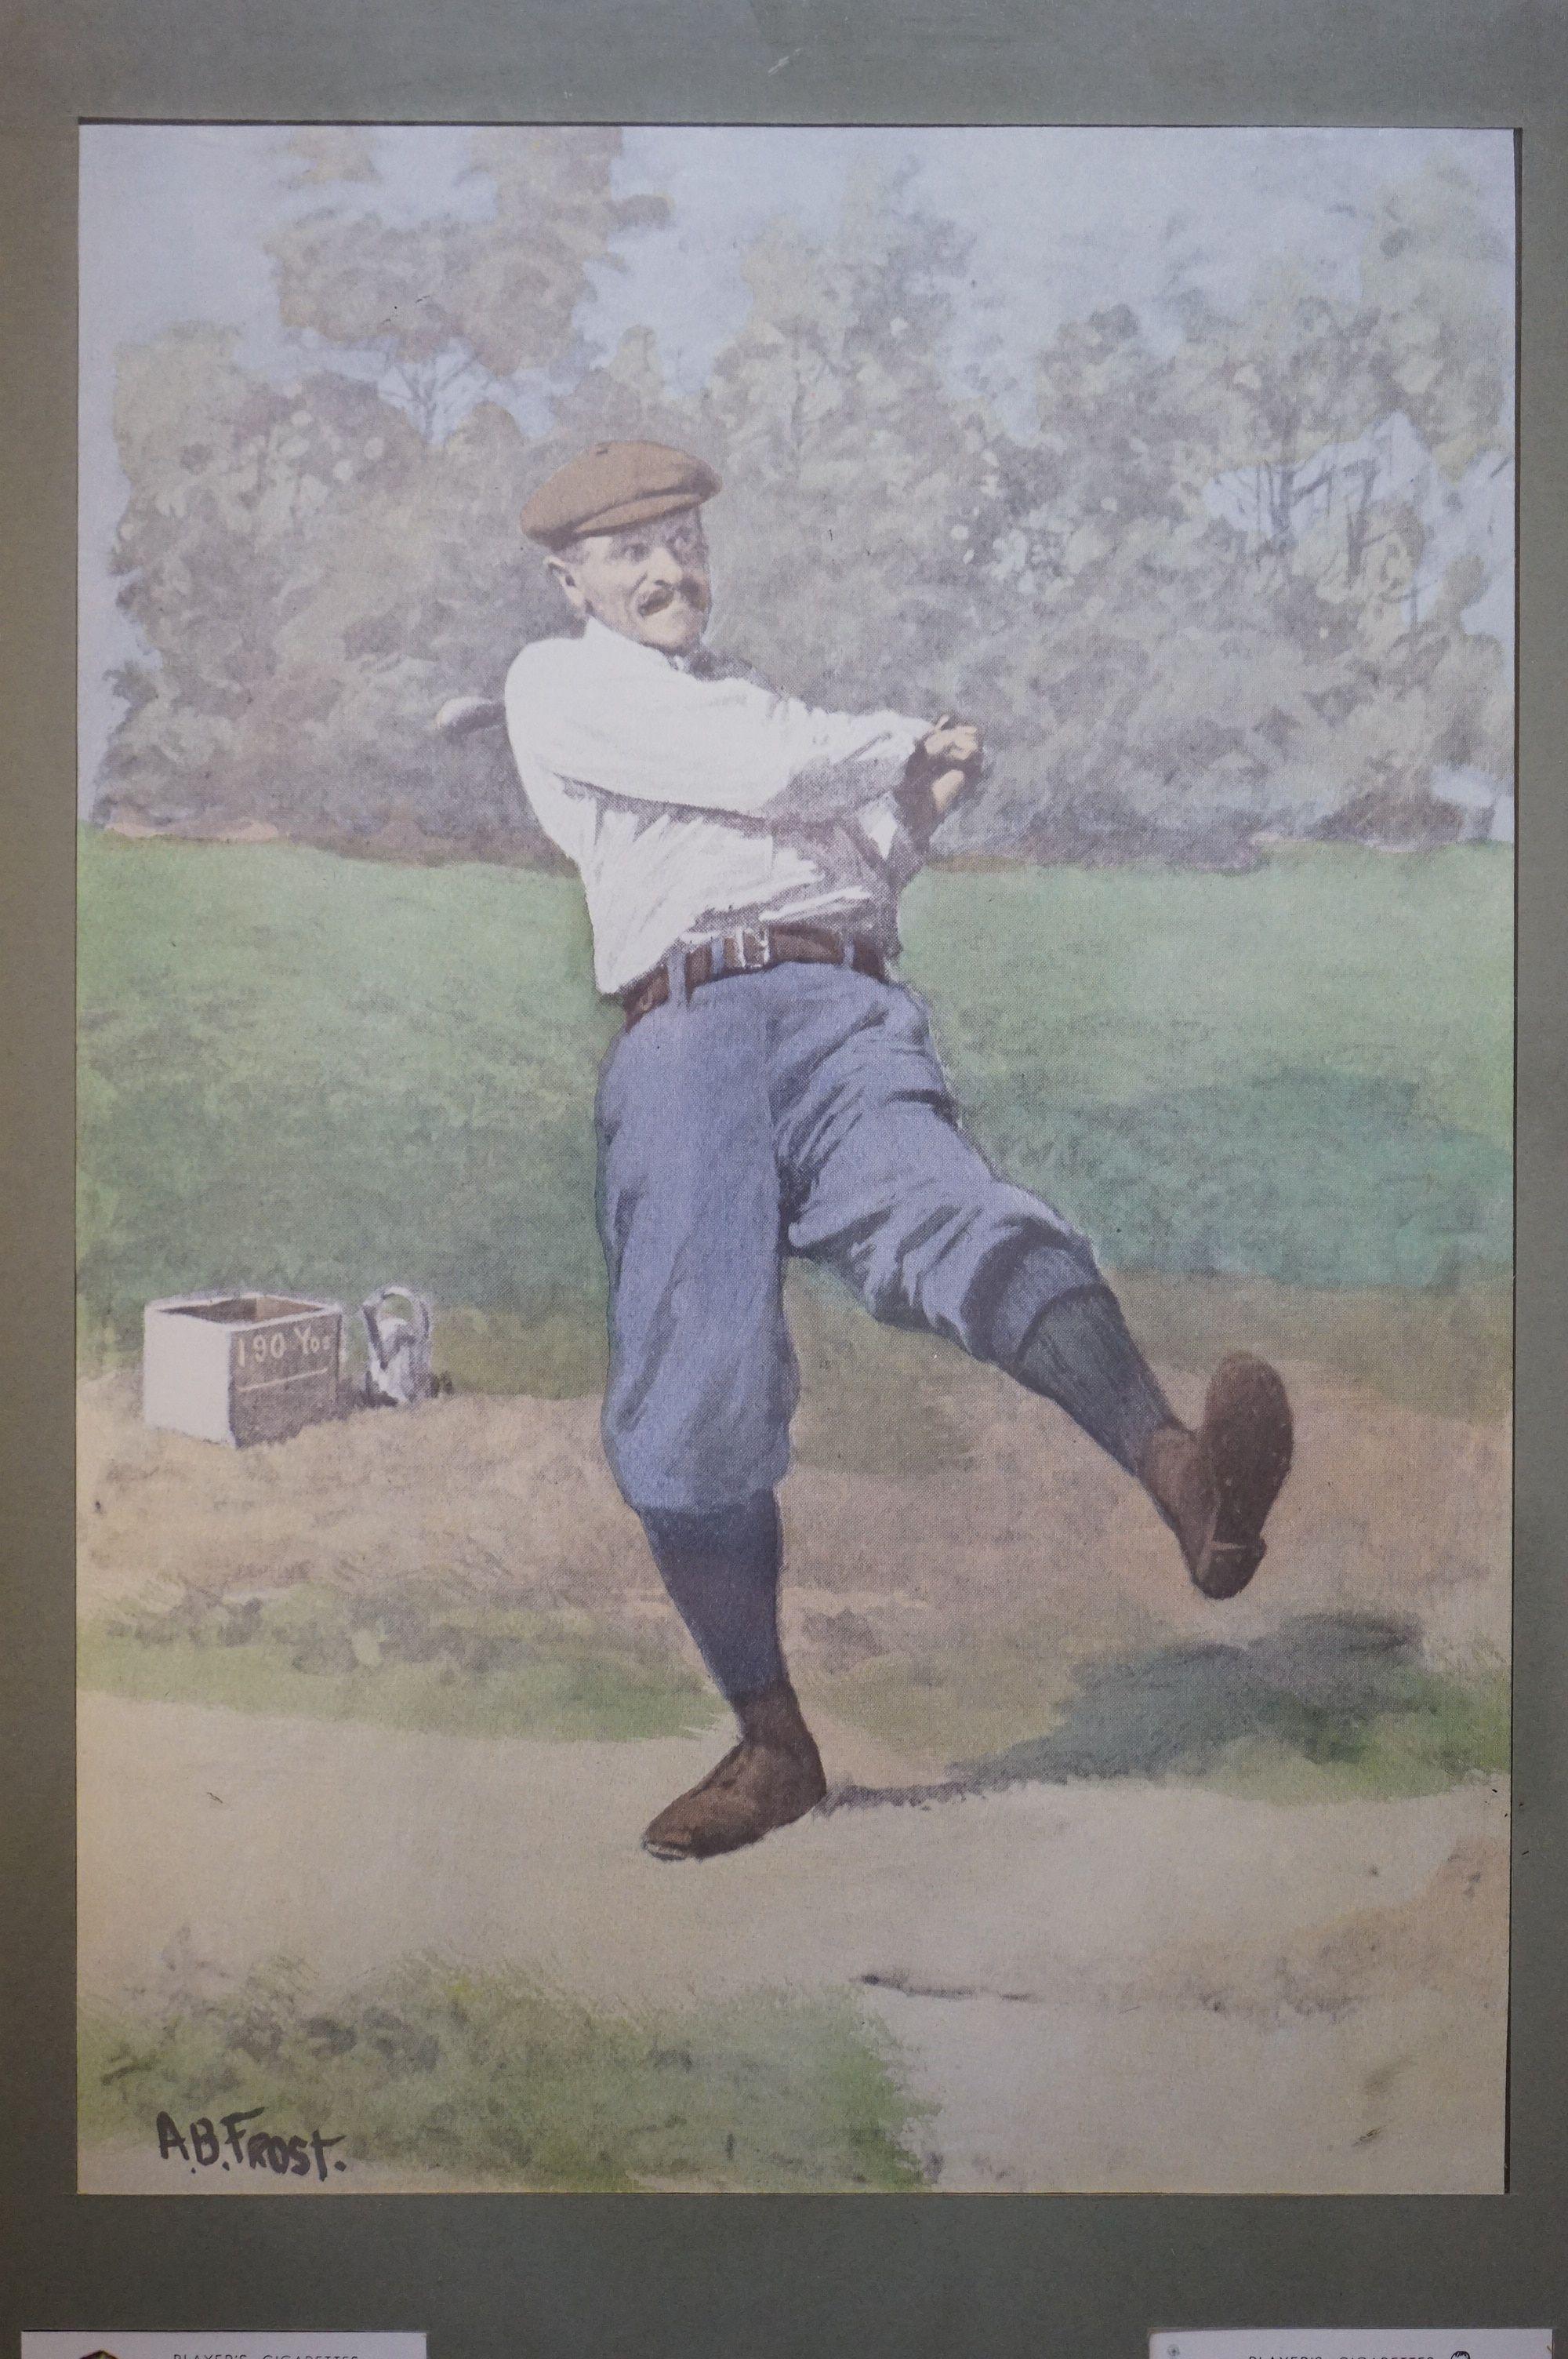 Golf - a John Player commemorative picture portraying famous golfers and their play methods - Image 2 of 6